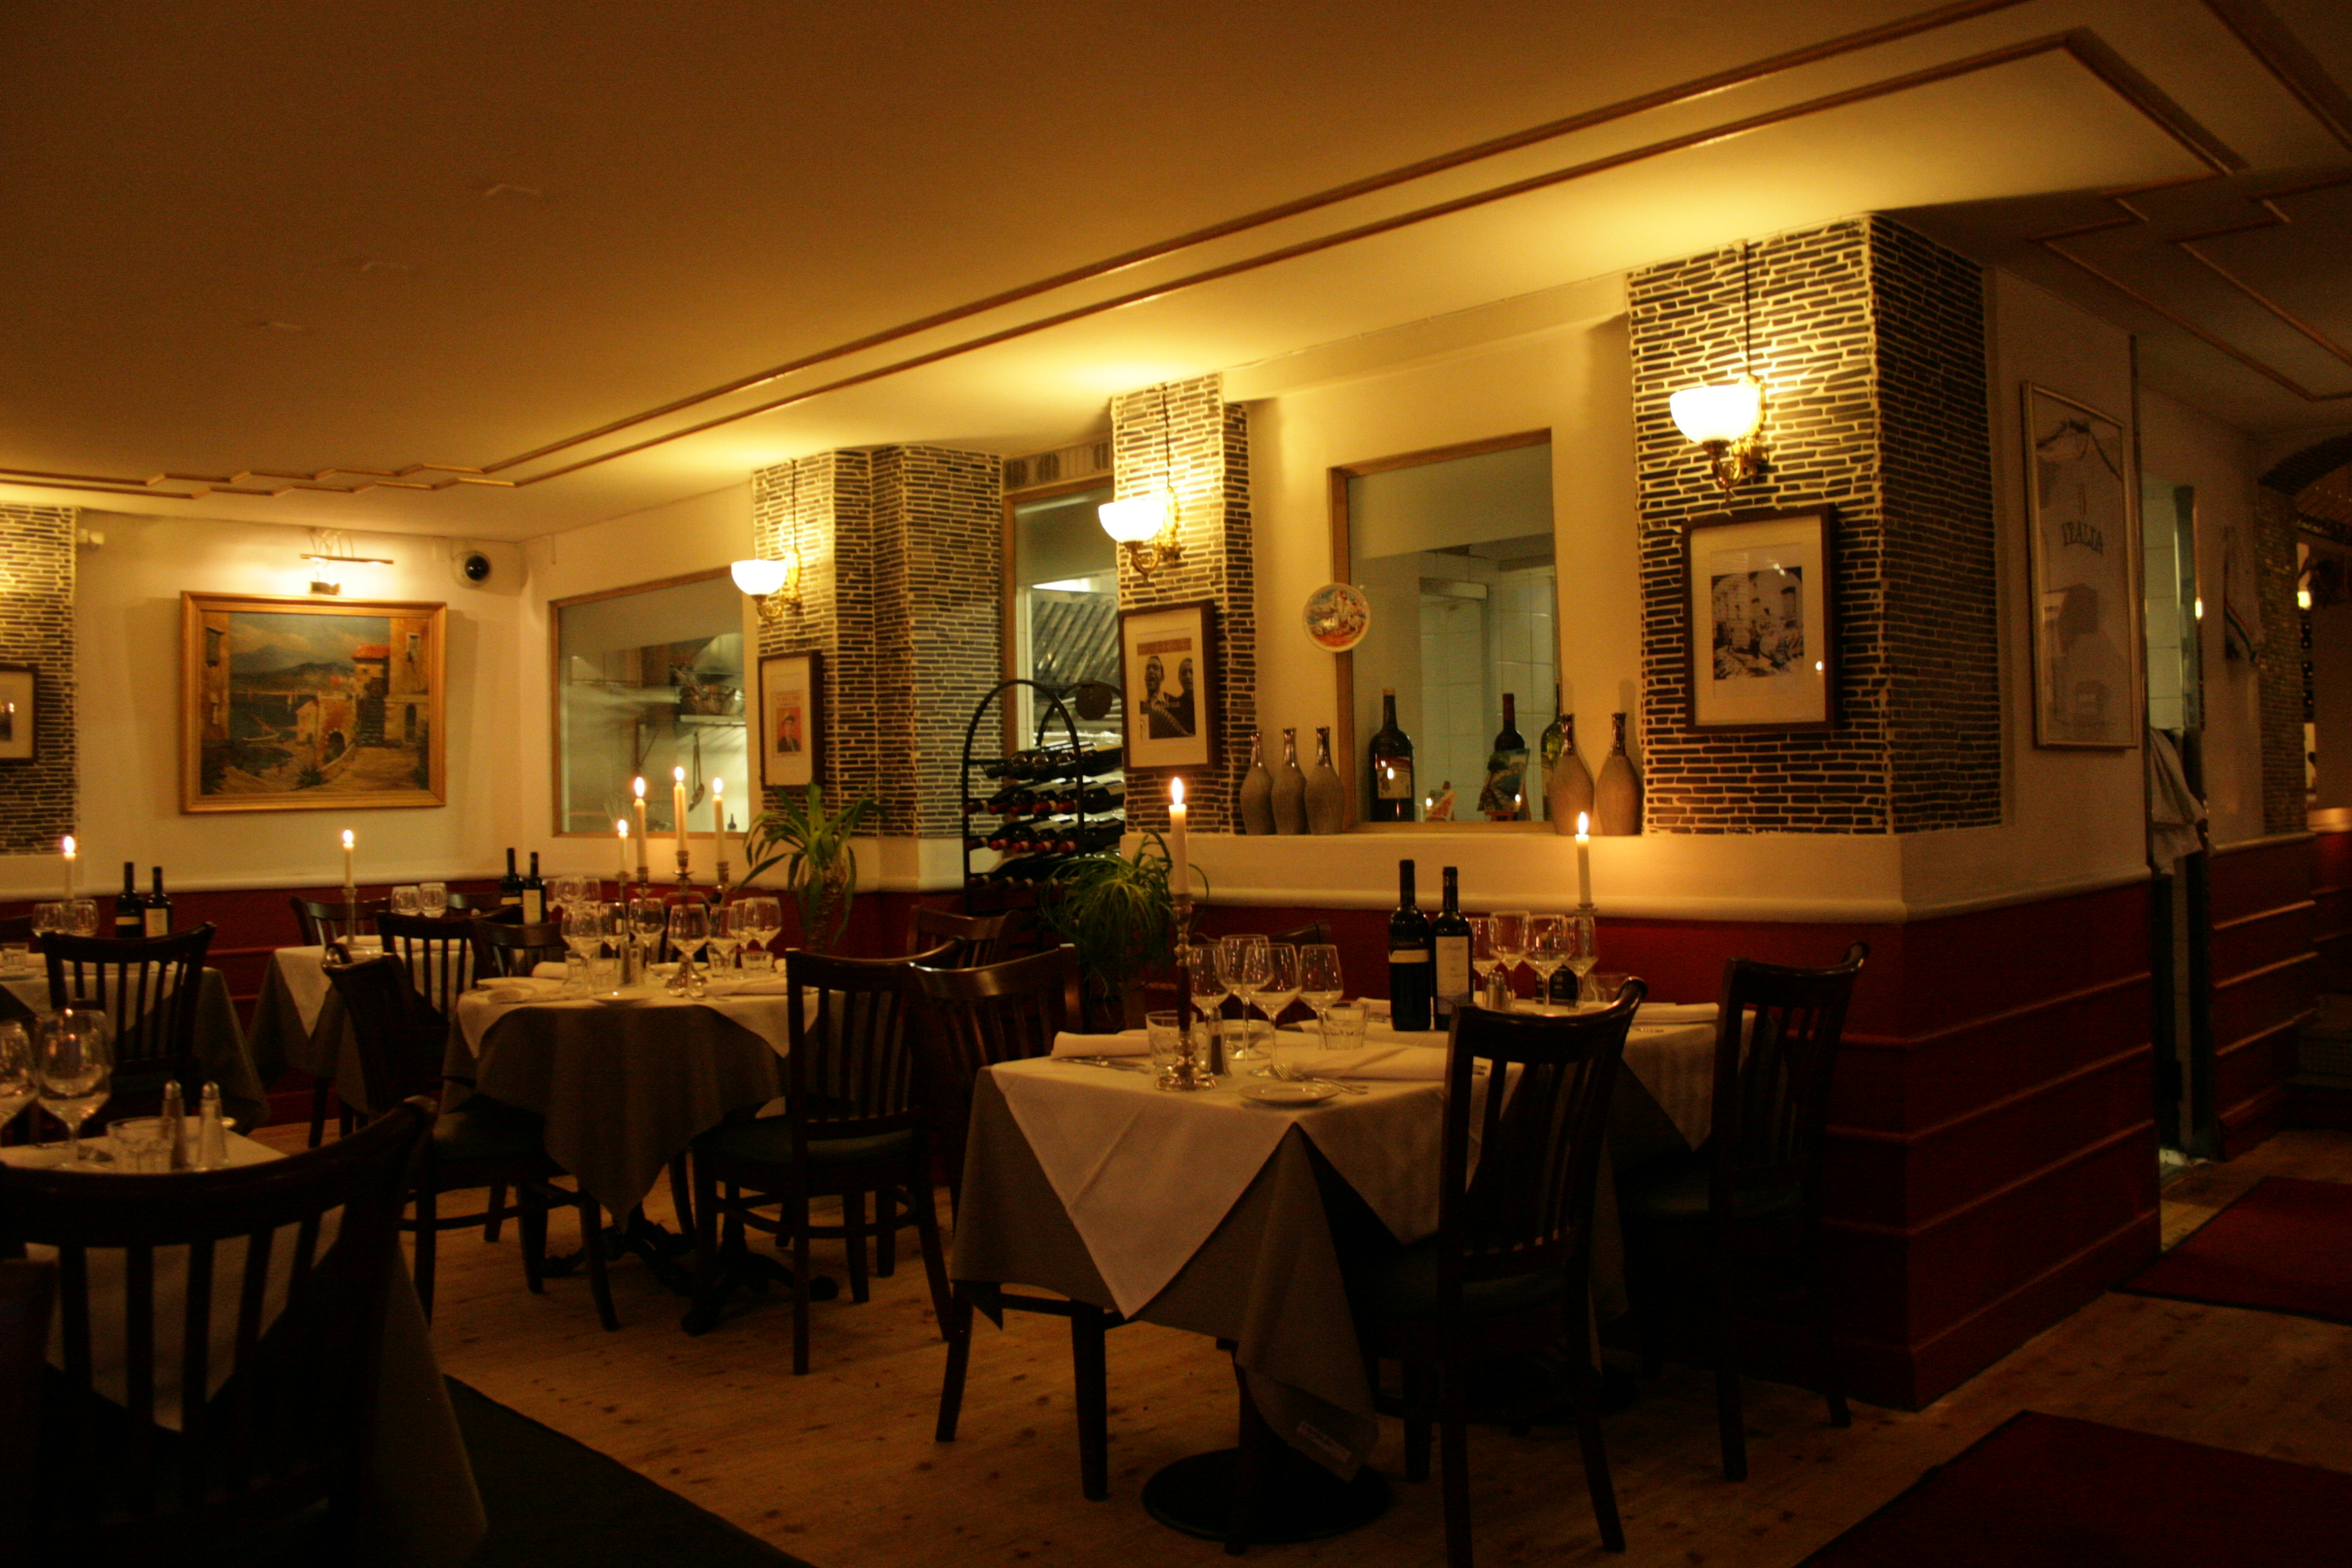 Reserve a table at Ristorante Uno